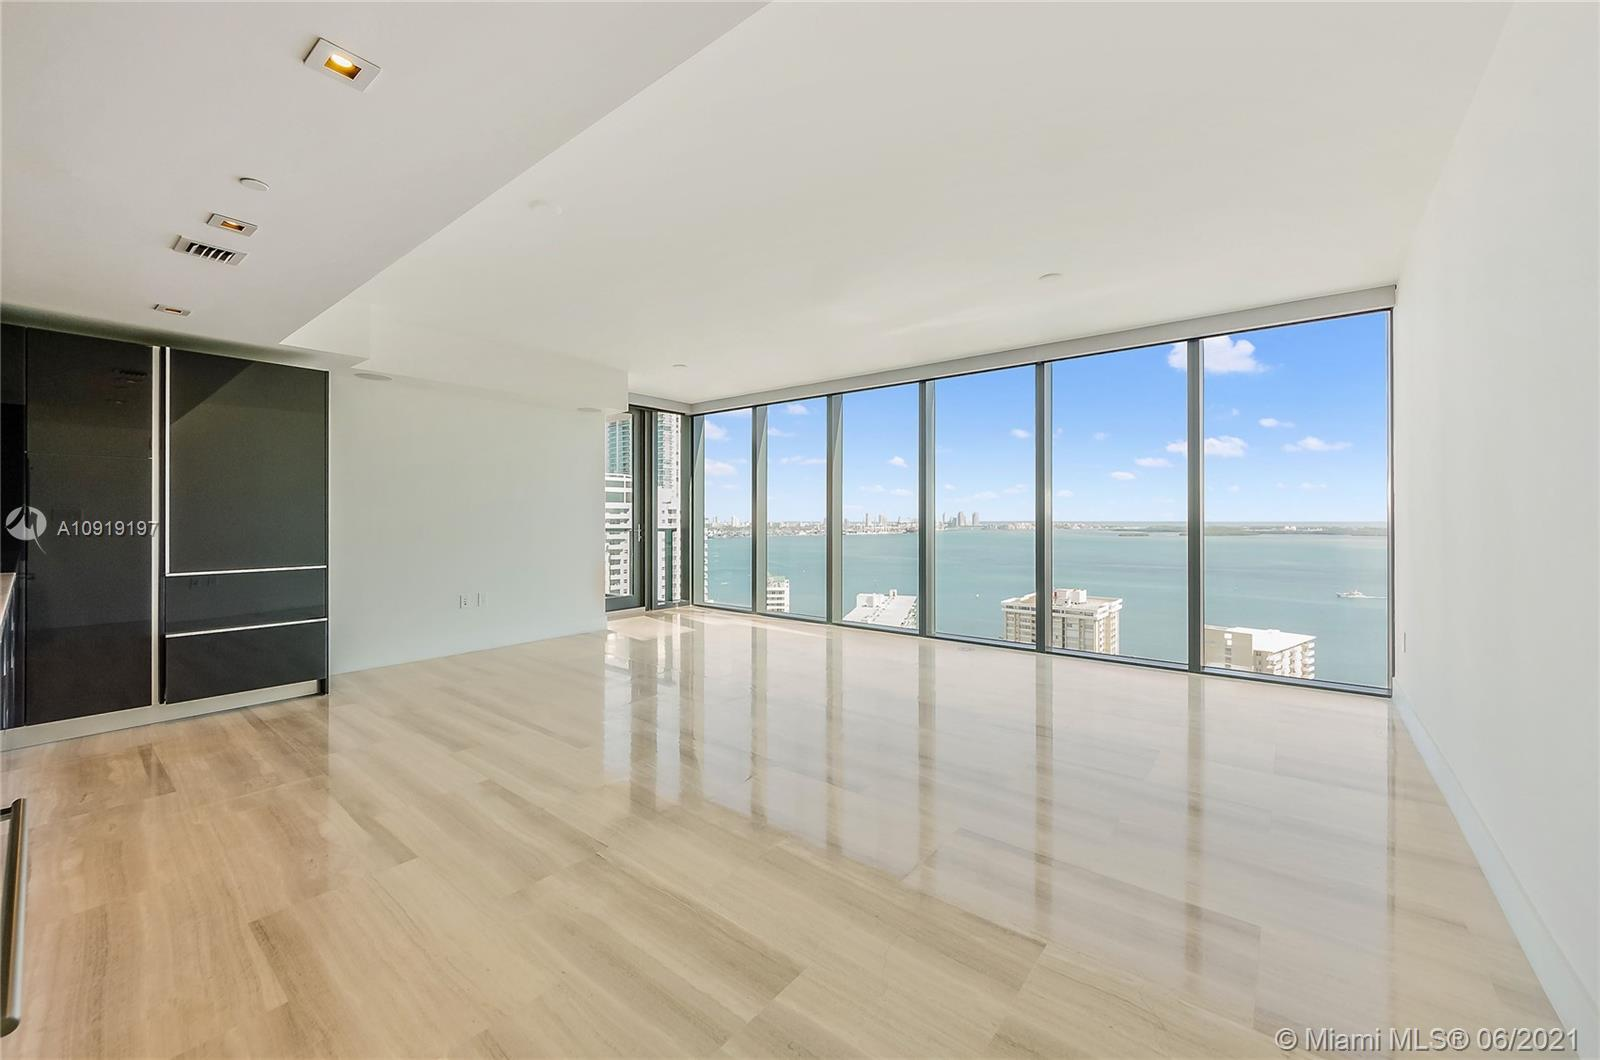 BEST PANORAMIC VIEWS TO BISCAYNE BAY AND THE ATLANTIC OCEAN! 2/2.5 corner unit in the exclusive boutique residential high-rise Echo Brickell developed by world-renowned architect Carlos Ott & interiors by YOO Studio. Marble floors throughout living areas (fully-finished). Floor to ceiling electric shades on all windows. Apple home technology, wall-mounted Ipad that controls audio, lighting, wall treatments & valet parking. Kitchen has Italian glass cabinetry, marble countertops & top-of-the-line Wolf & Bosch Sub Zero appliances, built-in coffee machine. Balcony w/summer kitchen. State-of-the-art gym, infinity edge pool & 2 hot tub Jacuzzi's. Spa deck w/panoramic bay & city views. Full concierge, valet, pet-friendly building w/pet walker, limo service available up to 5 miles away